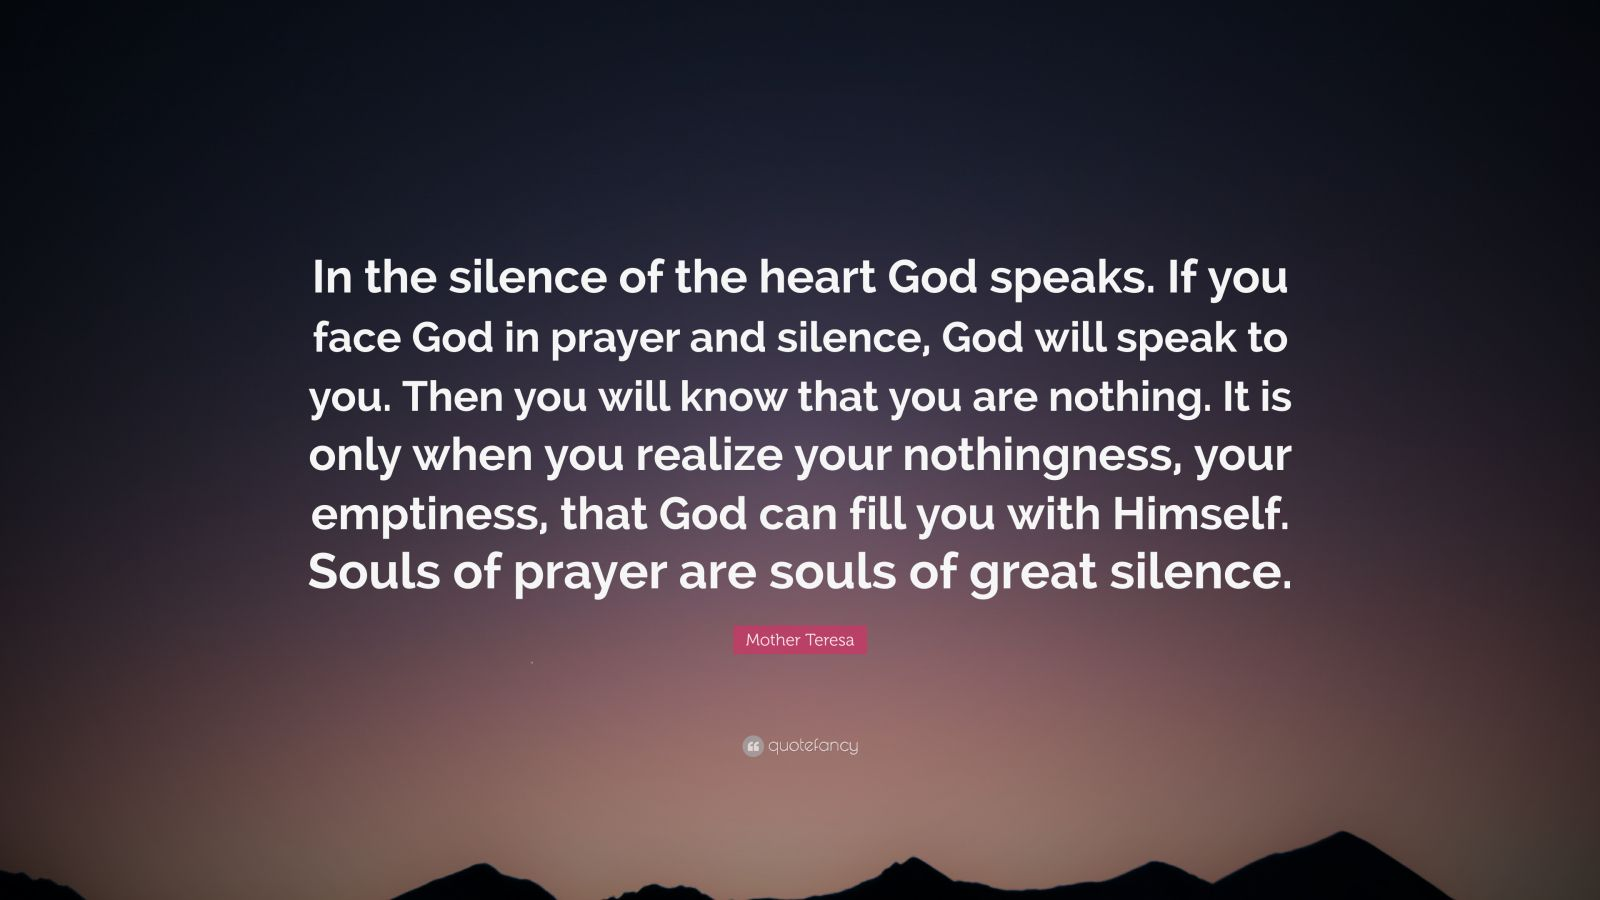 Shakespeare Wallpapers With Quotes Mother Teresa Quote In The Silence Of The Heart God